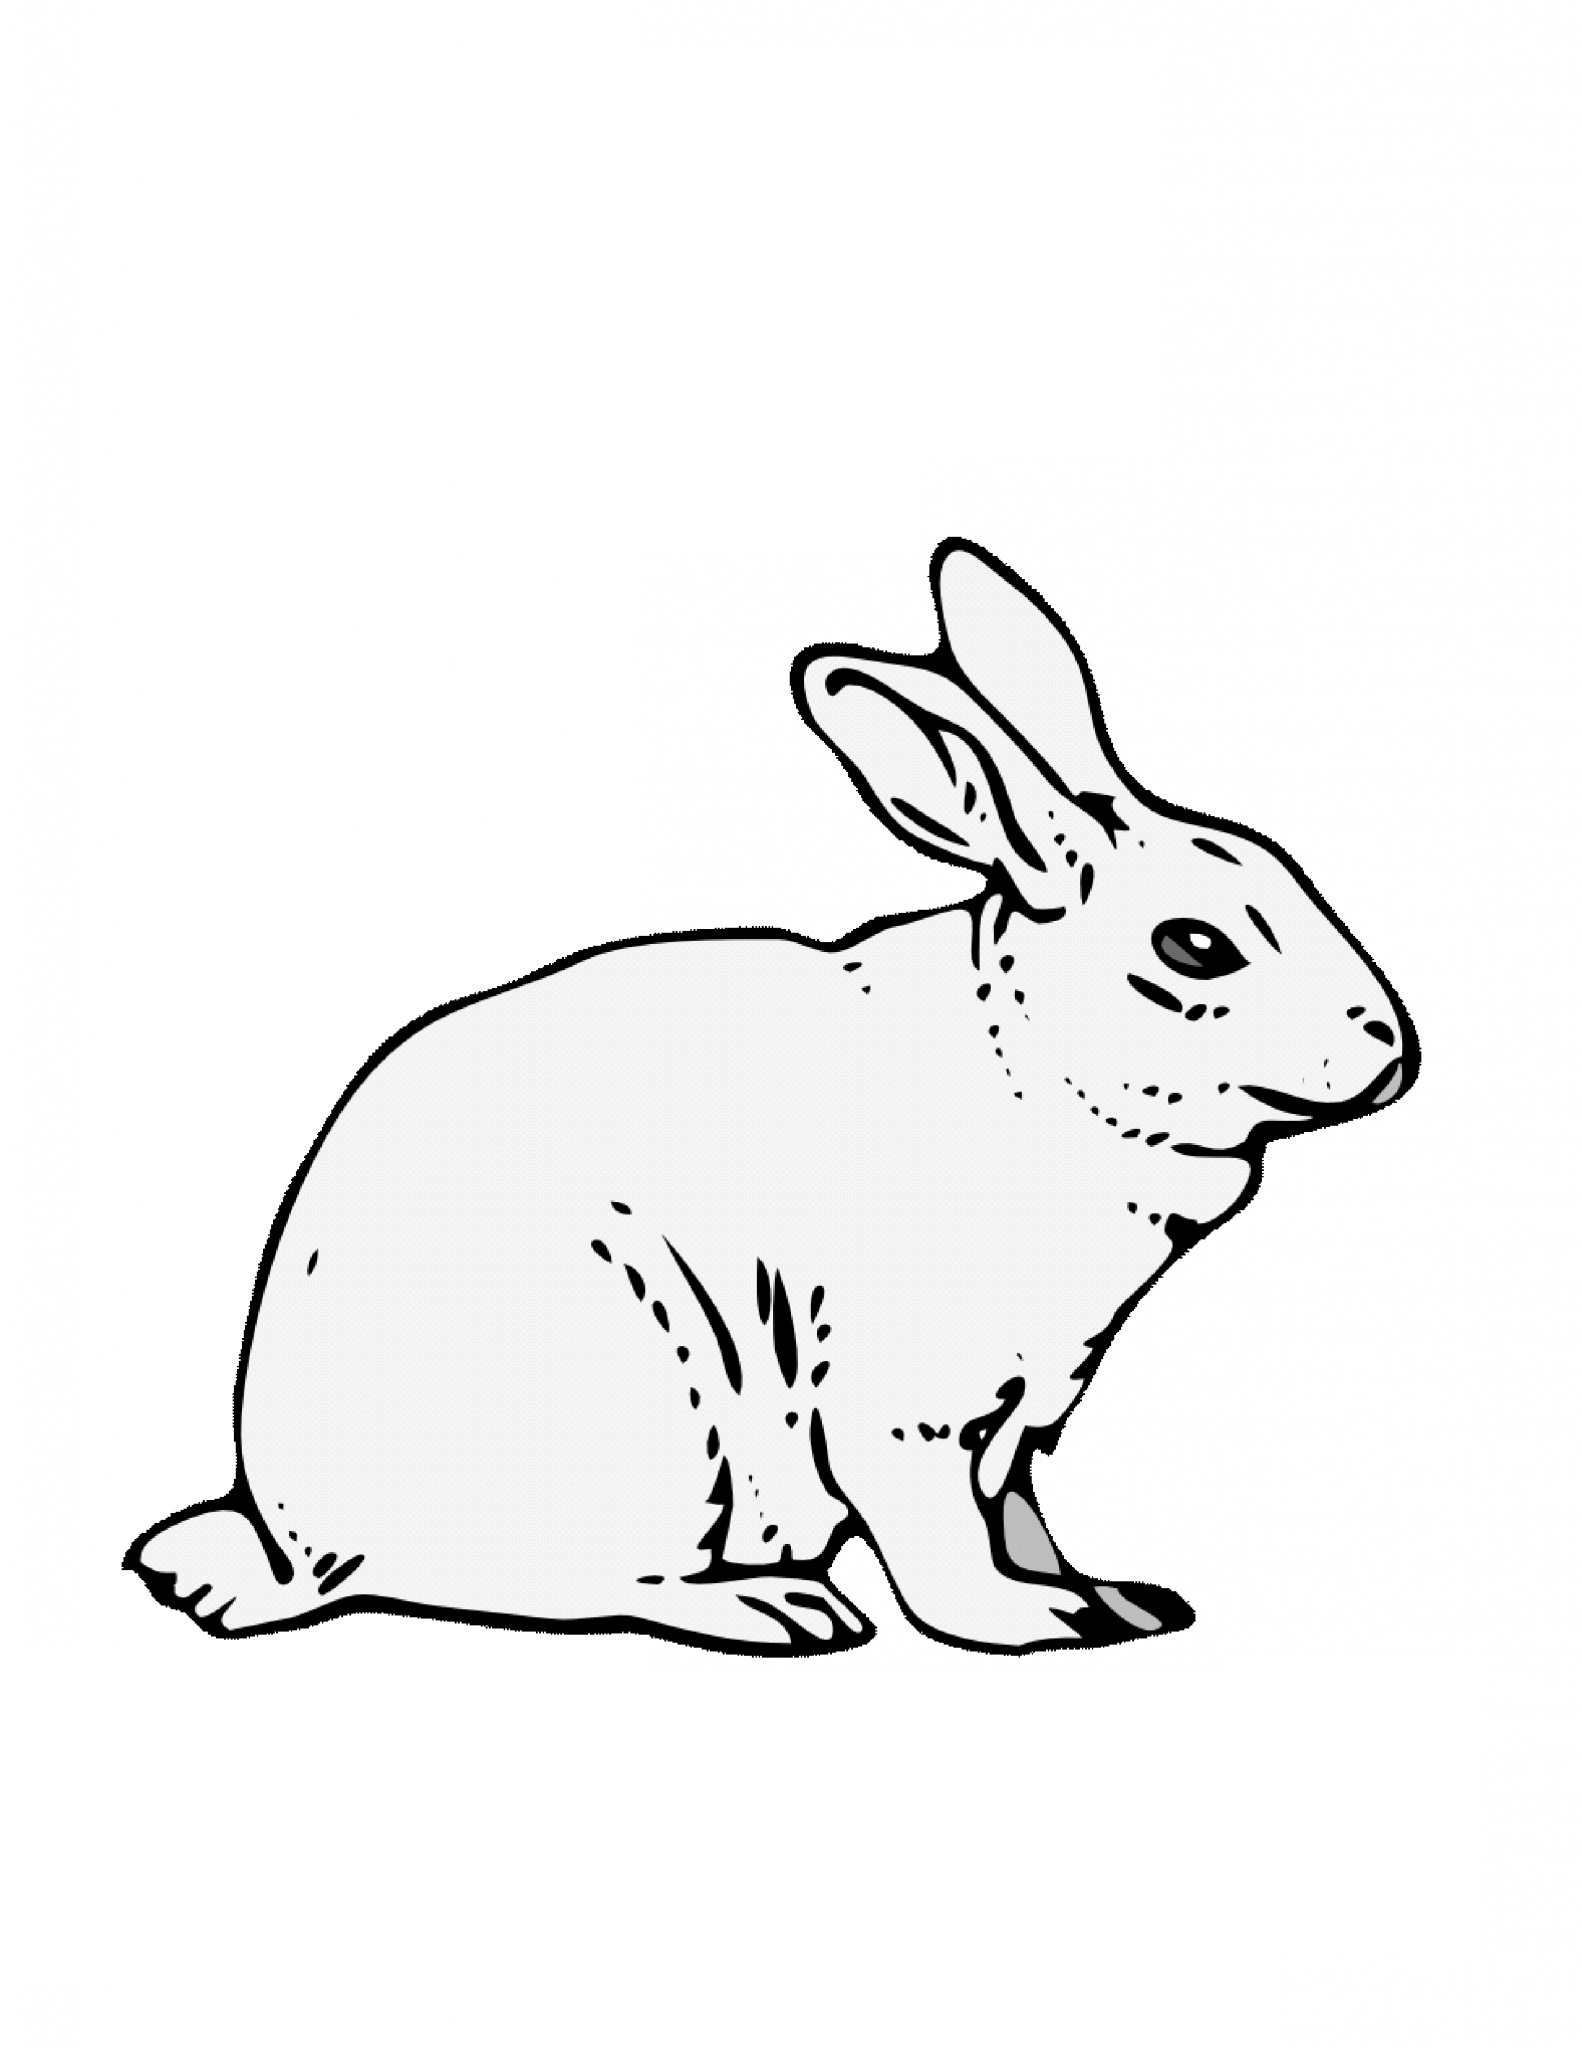 rabbit pictures for kids bunny coloring pages best coloring pages for kids kids for rabbit pictures 1 1